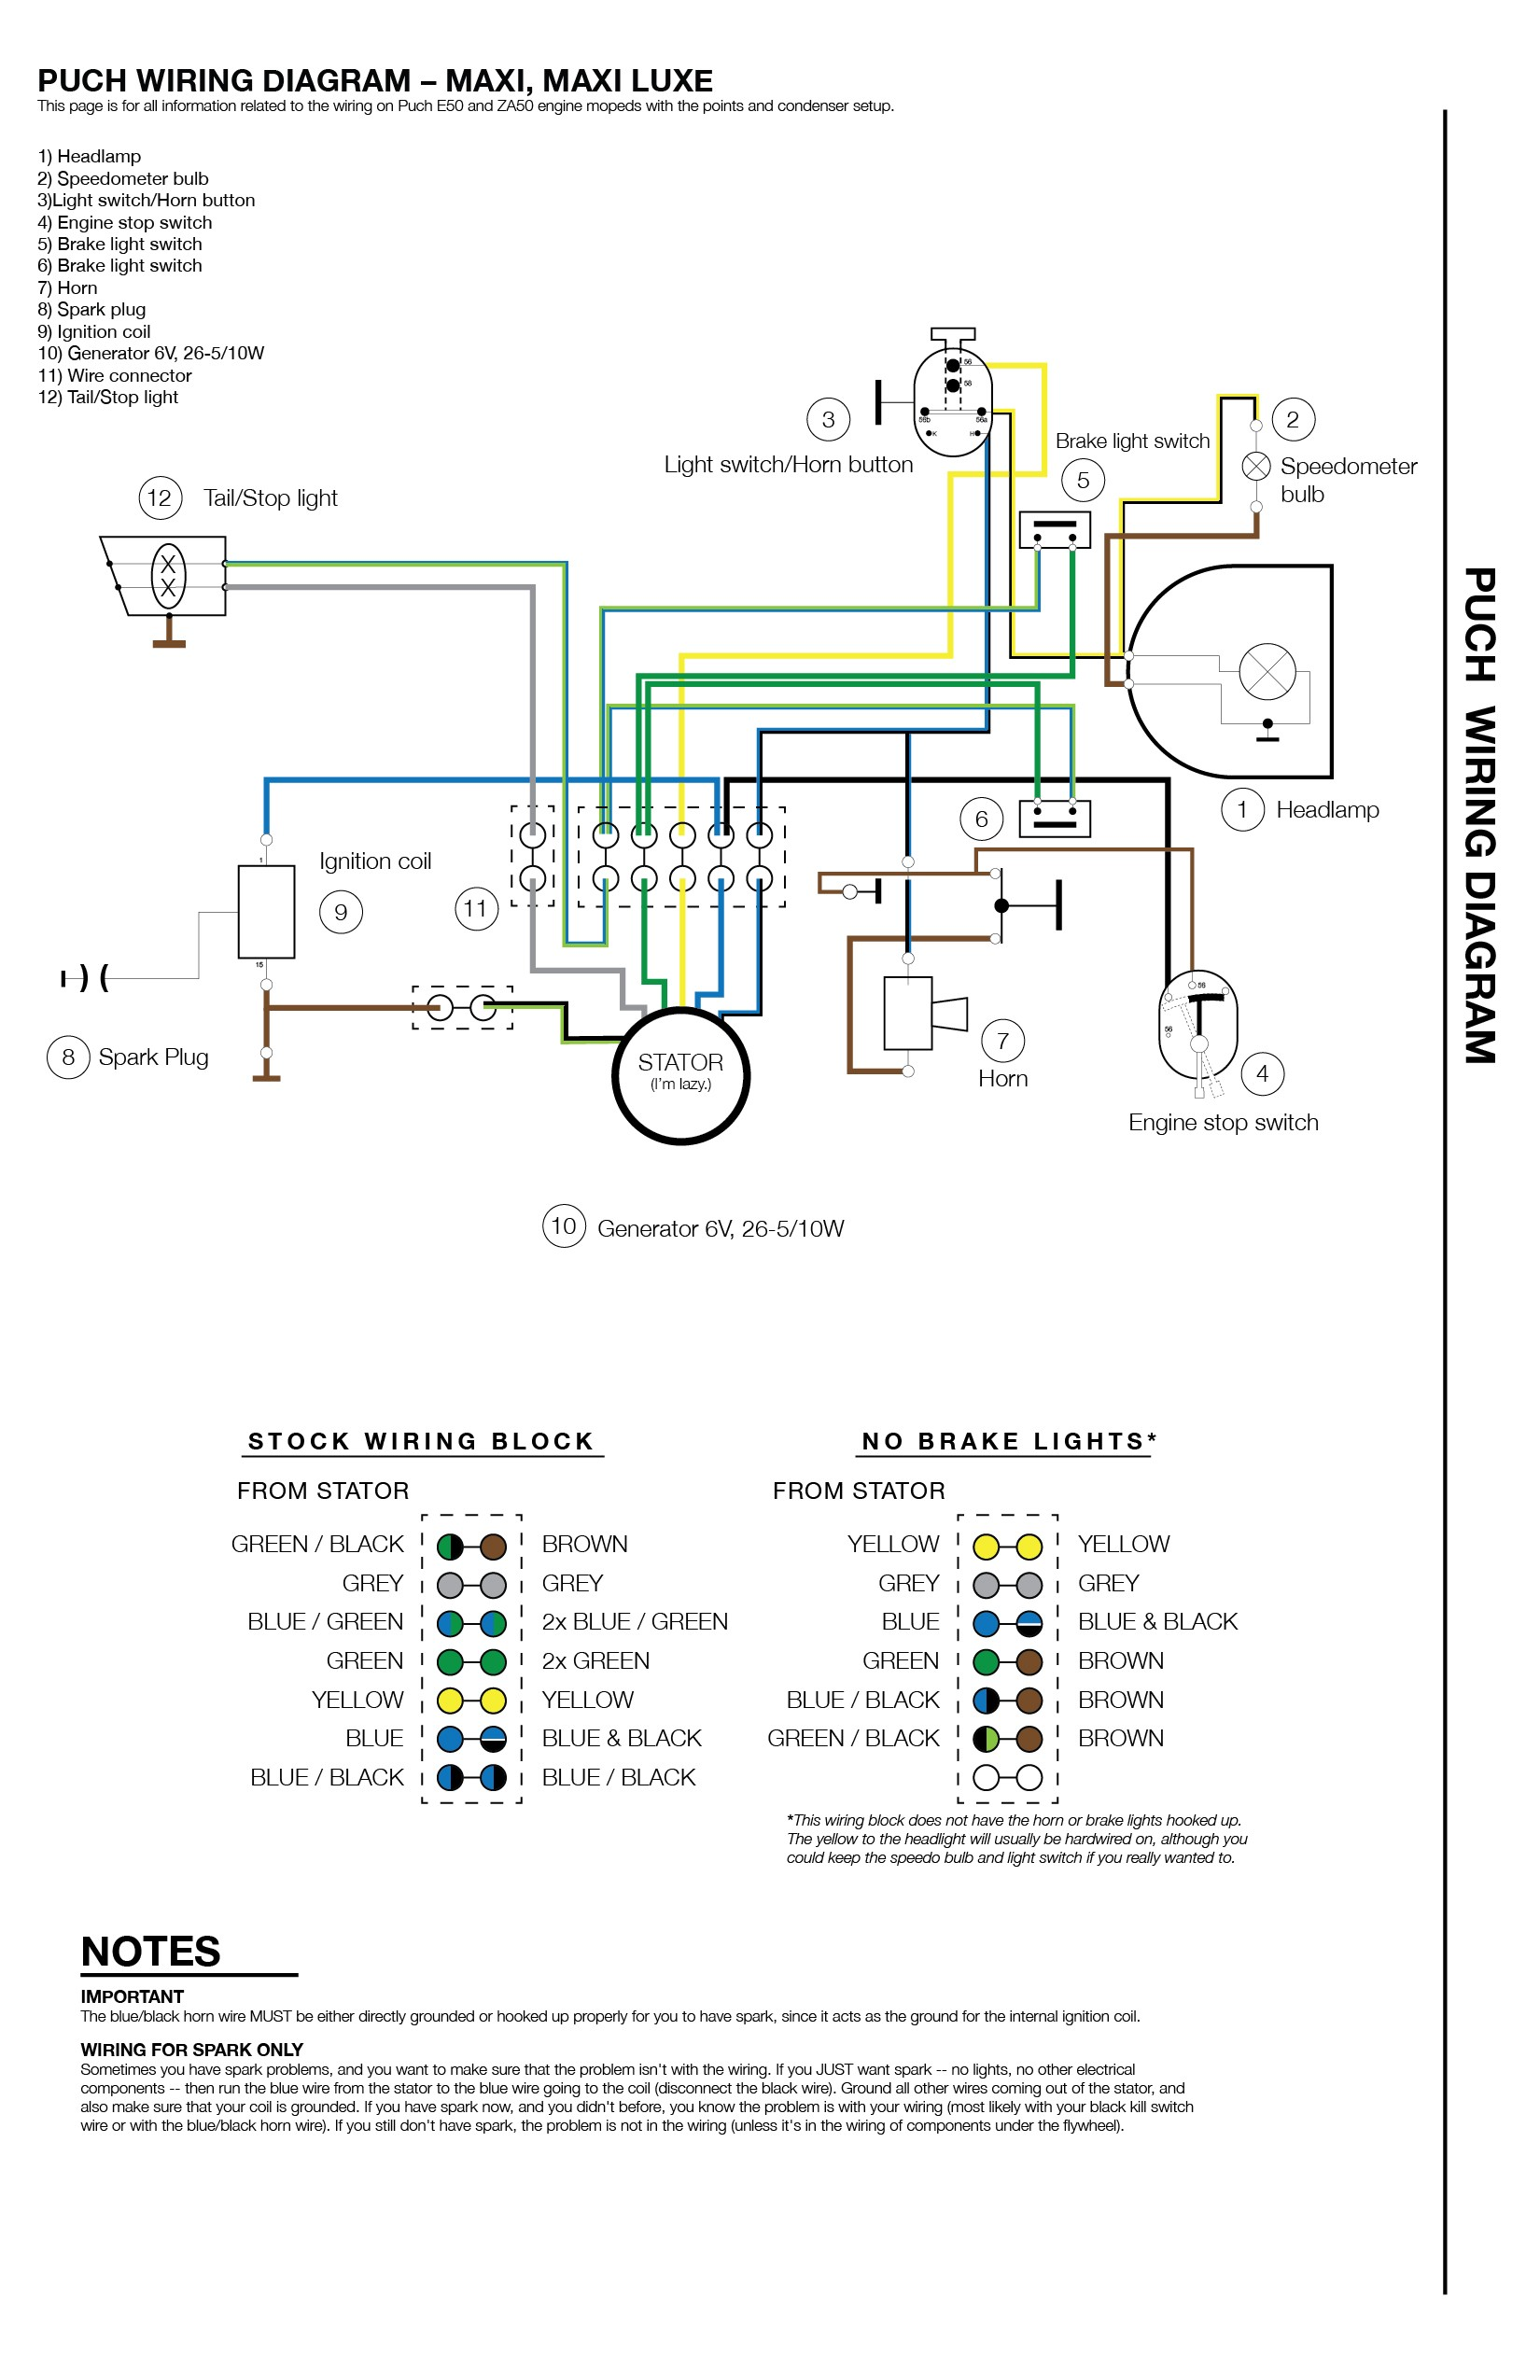 Wire Trailer Wiring Diagram Moreover Ducati Supersport St4 Diagrams Image Rh Mainetreasurechest Com